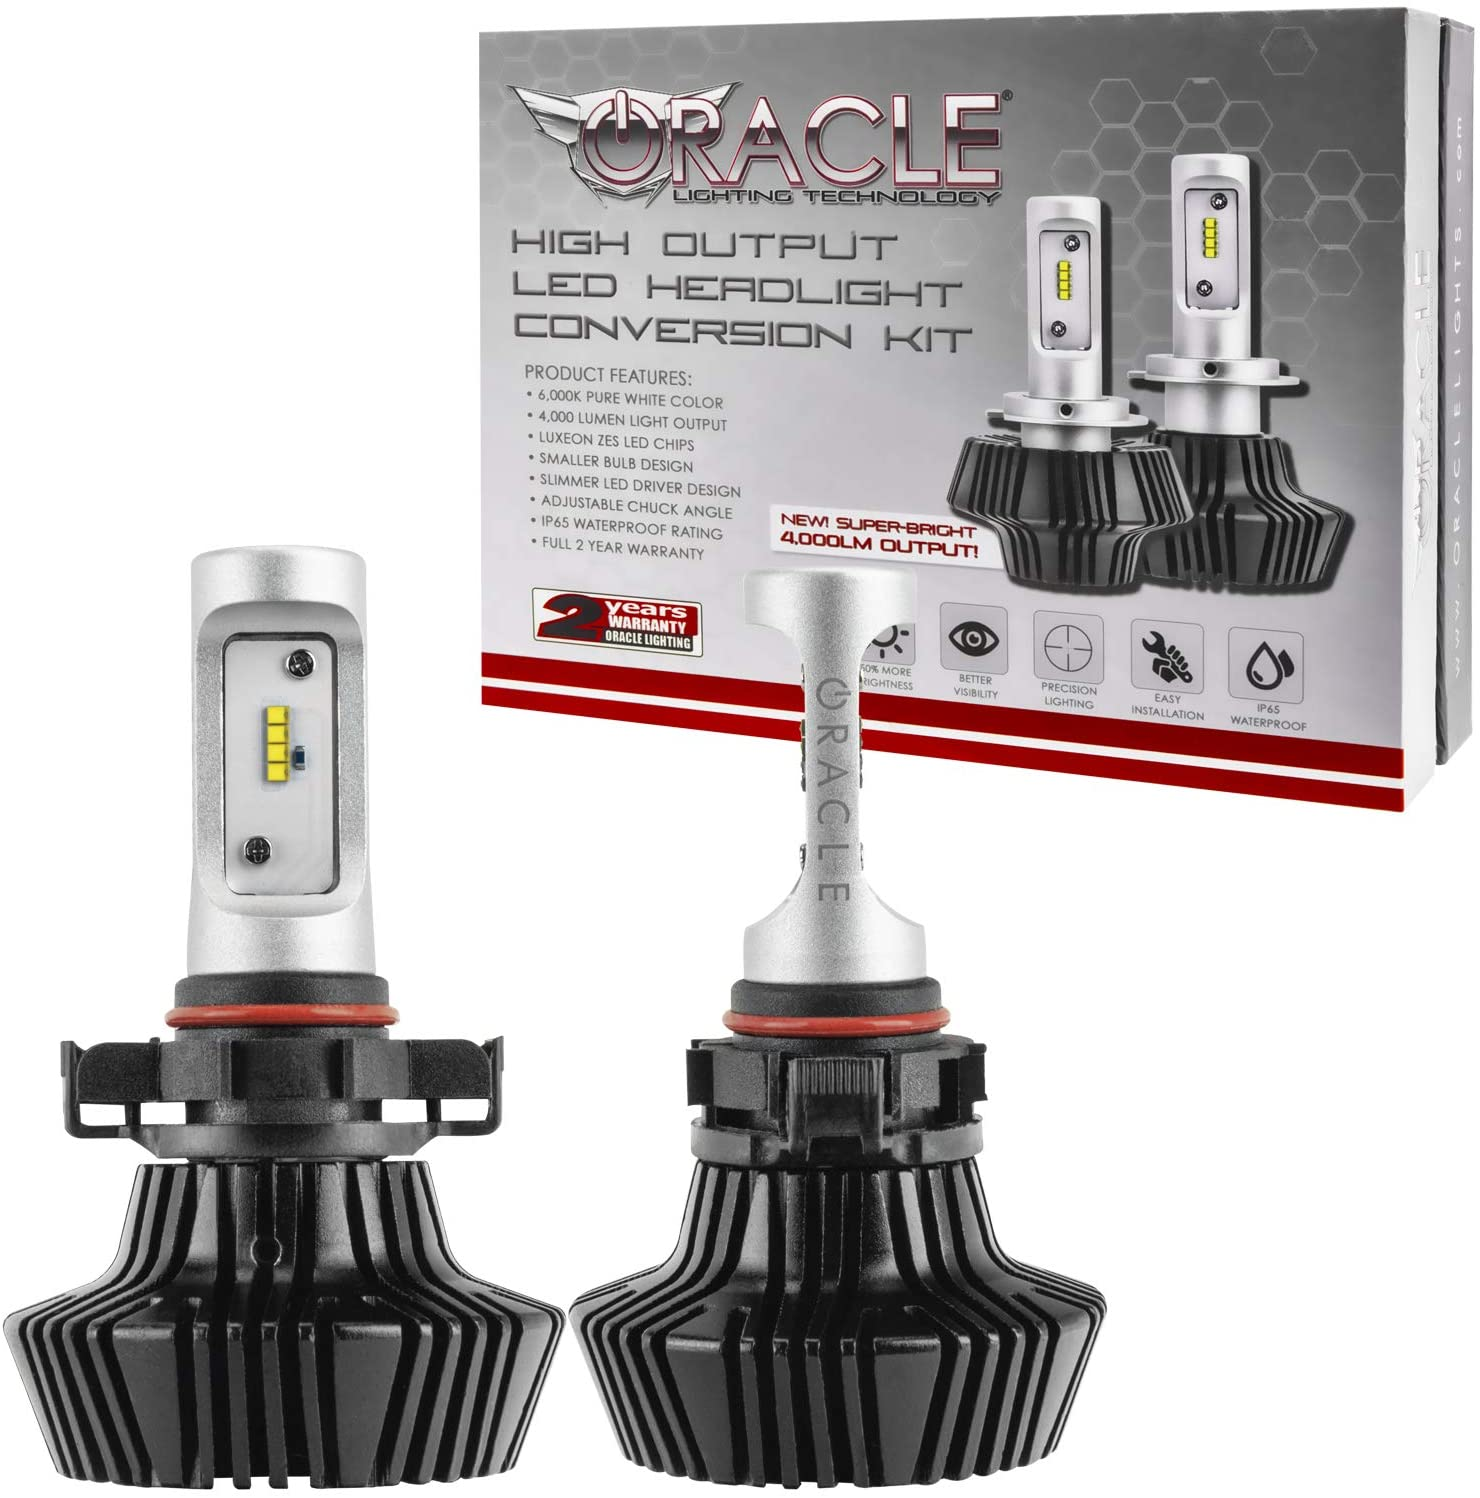 ORACLE 4,000 Lumen LED Headlight Bulbs - One Pair of LED Headlights for Cars (PSX24W/2504) - Part # 5245-001